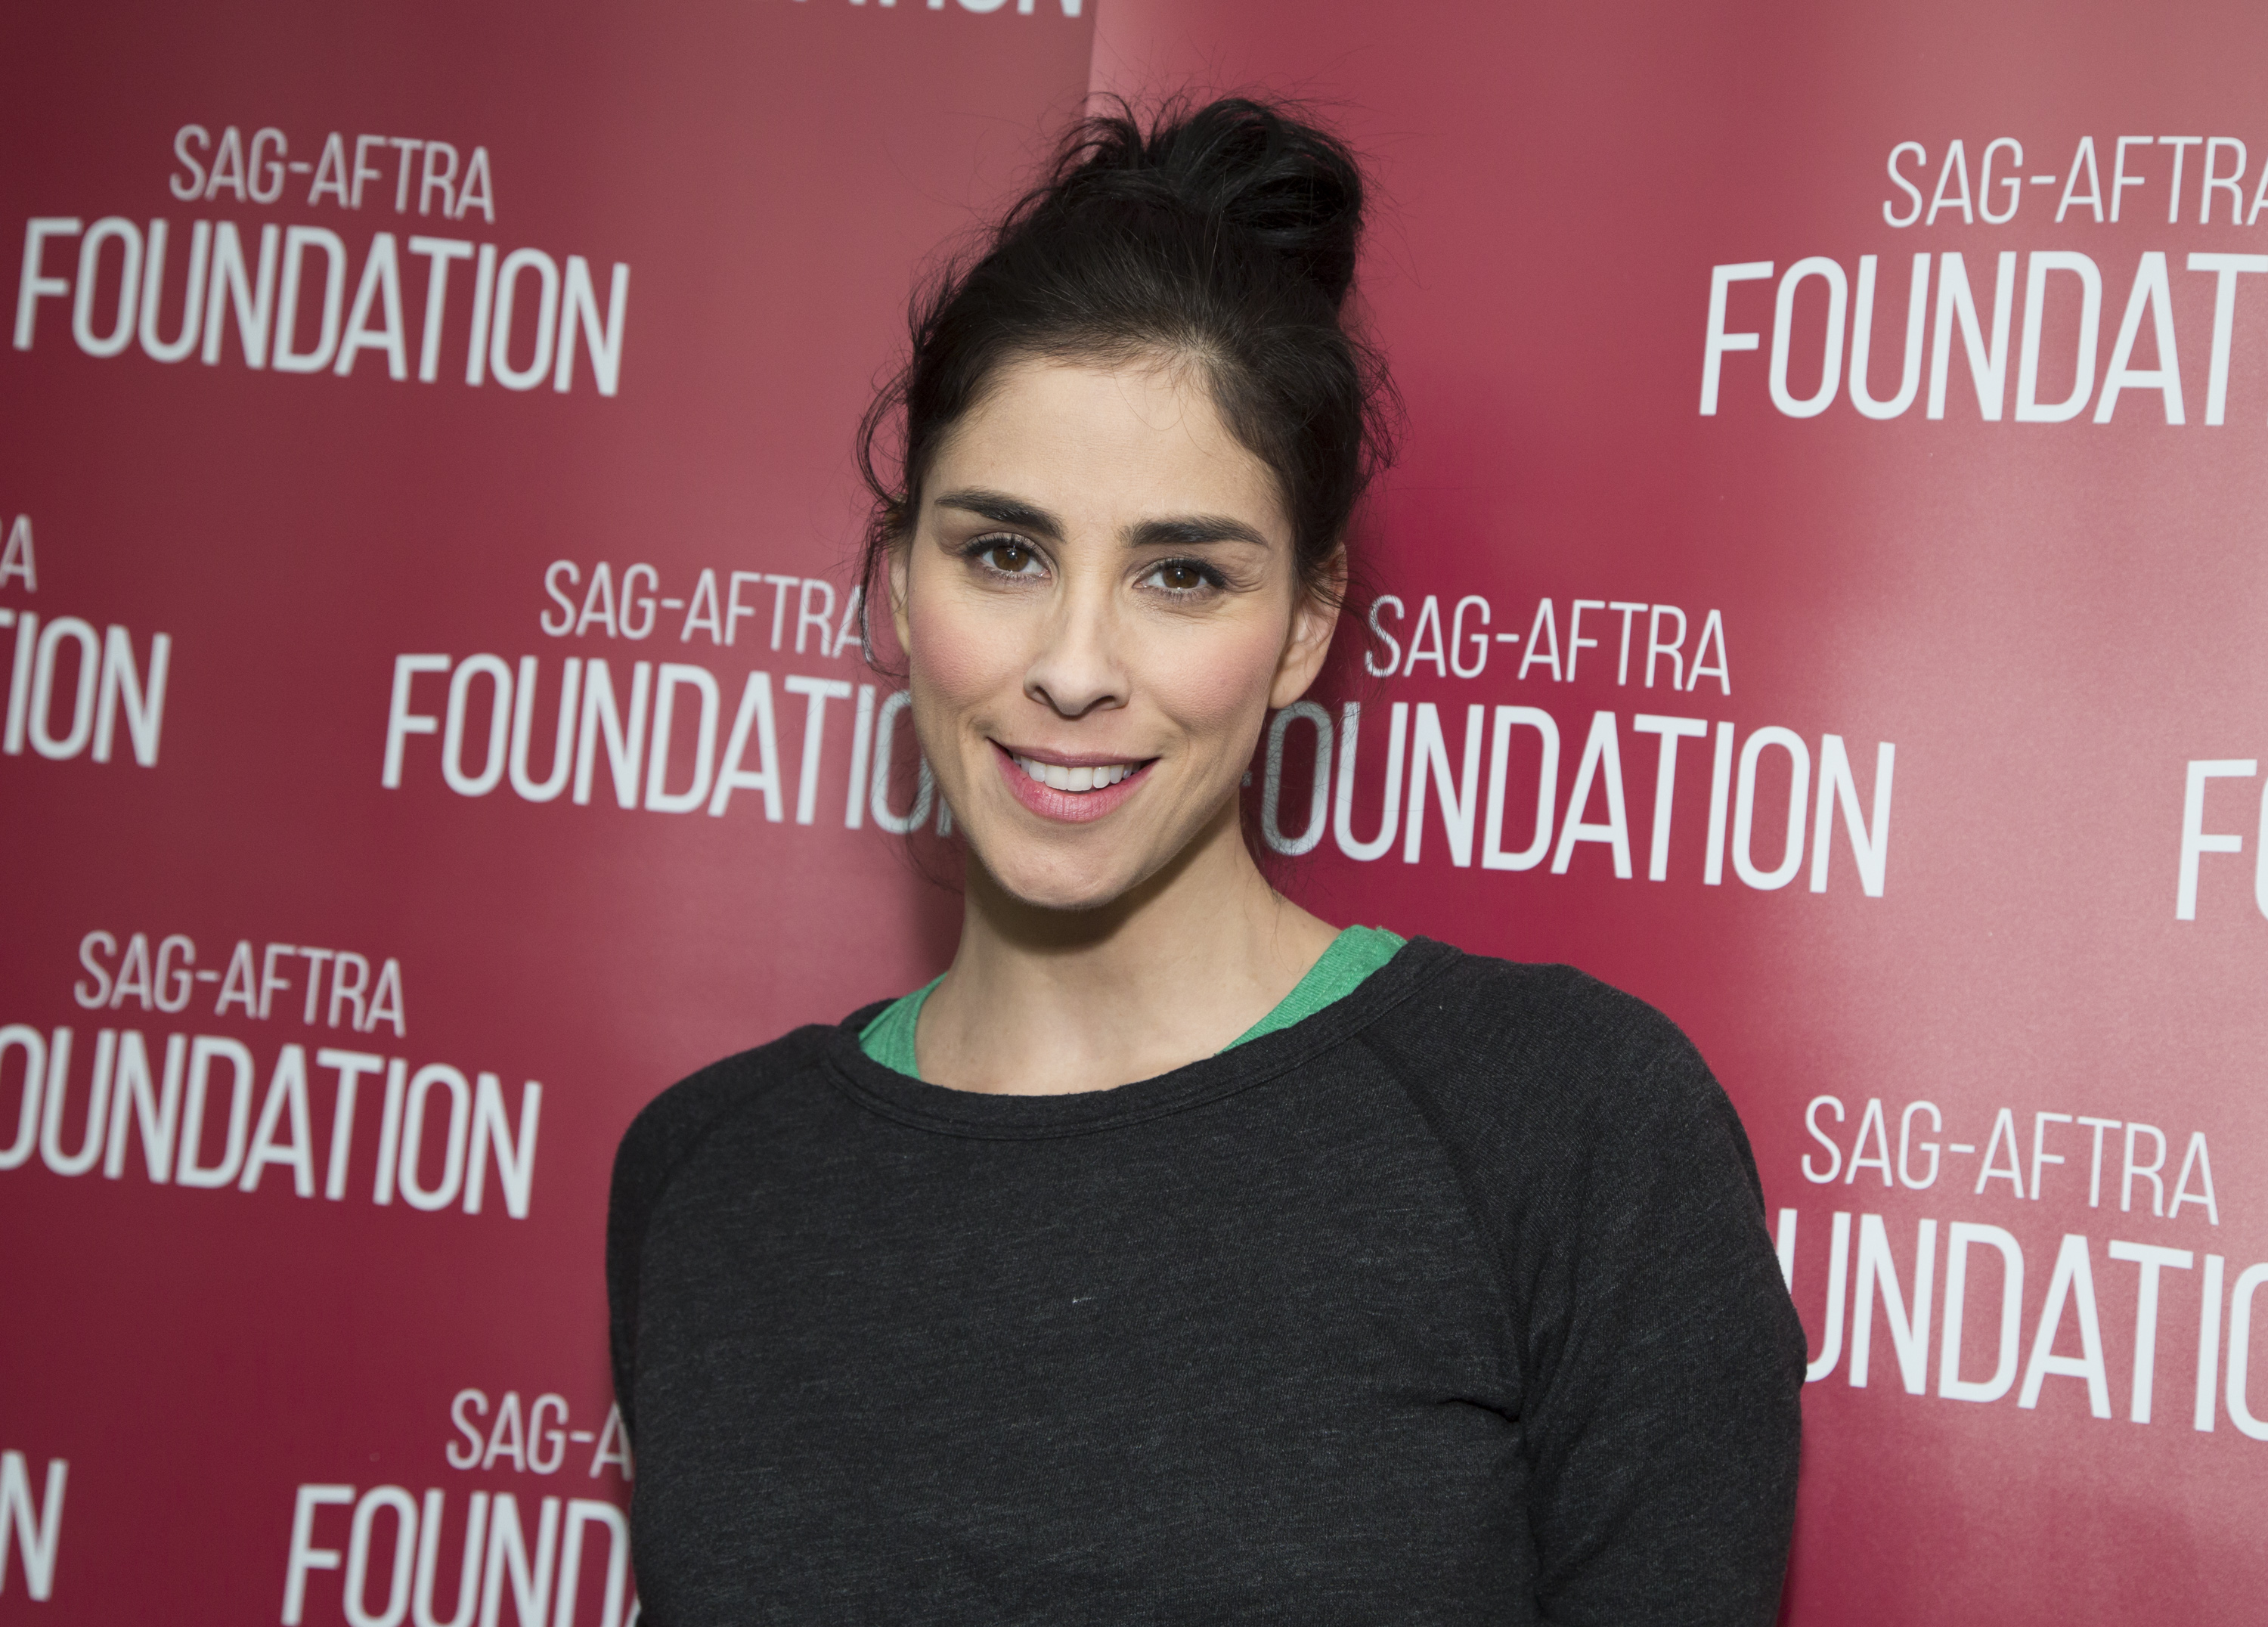 Actress Sarah Silverman attends the SAG-AFTRA Foundation conversations with Sarah Silverman for  I Smile Back  at at SAG-AFTRA on November 23, 2015 in West Hollywood, California.